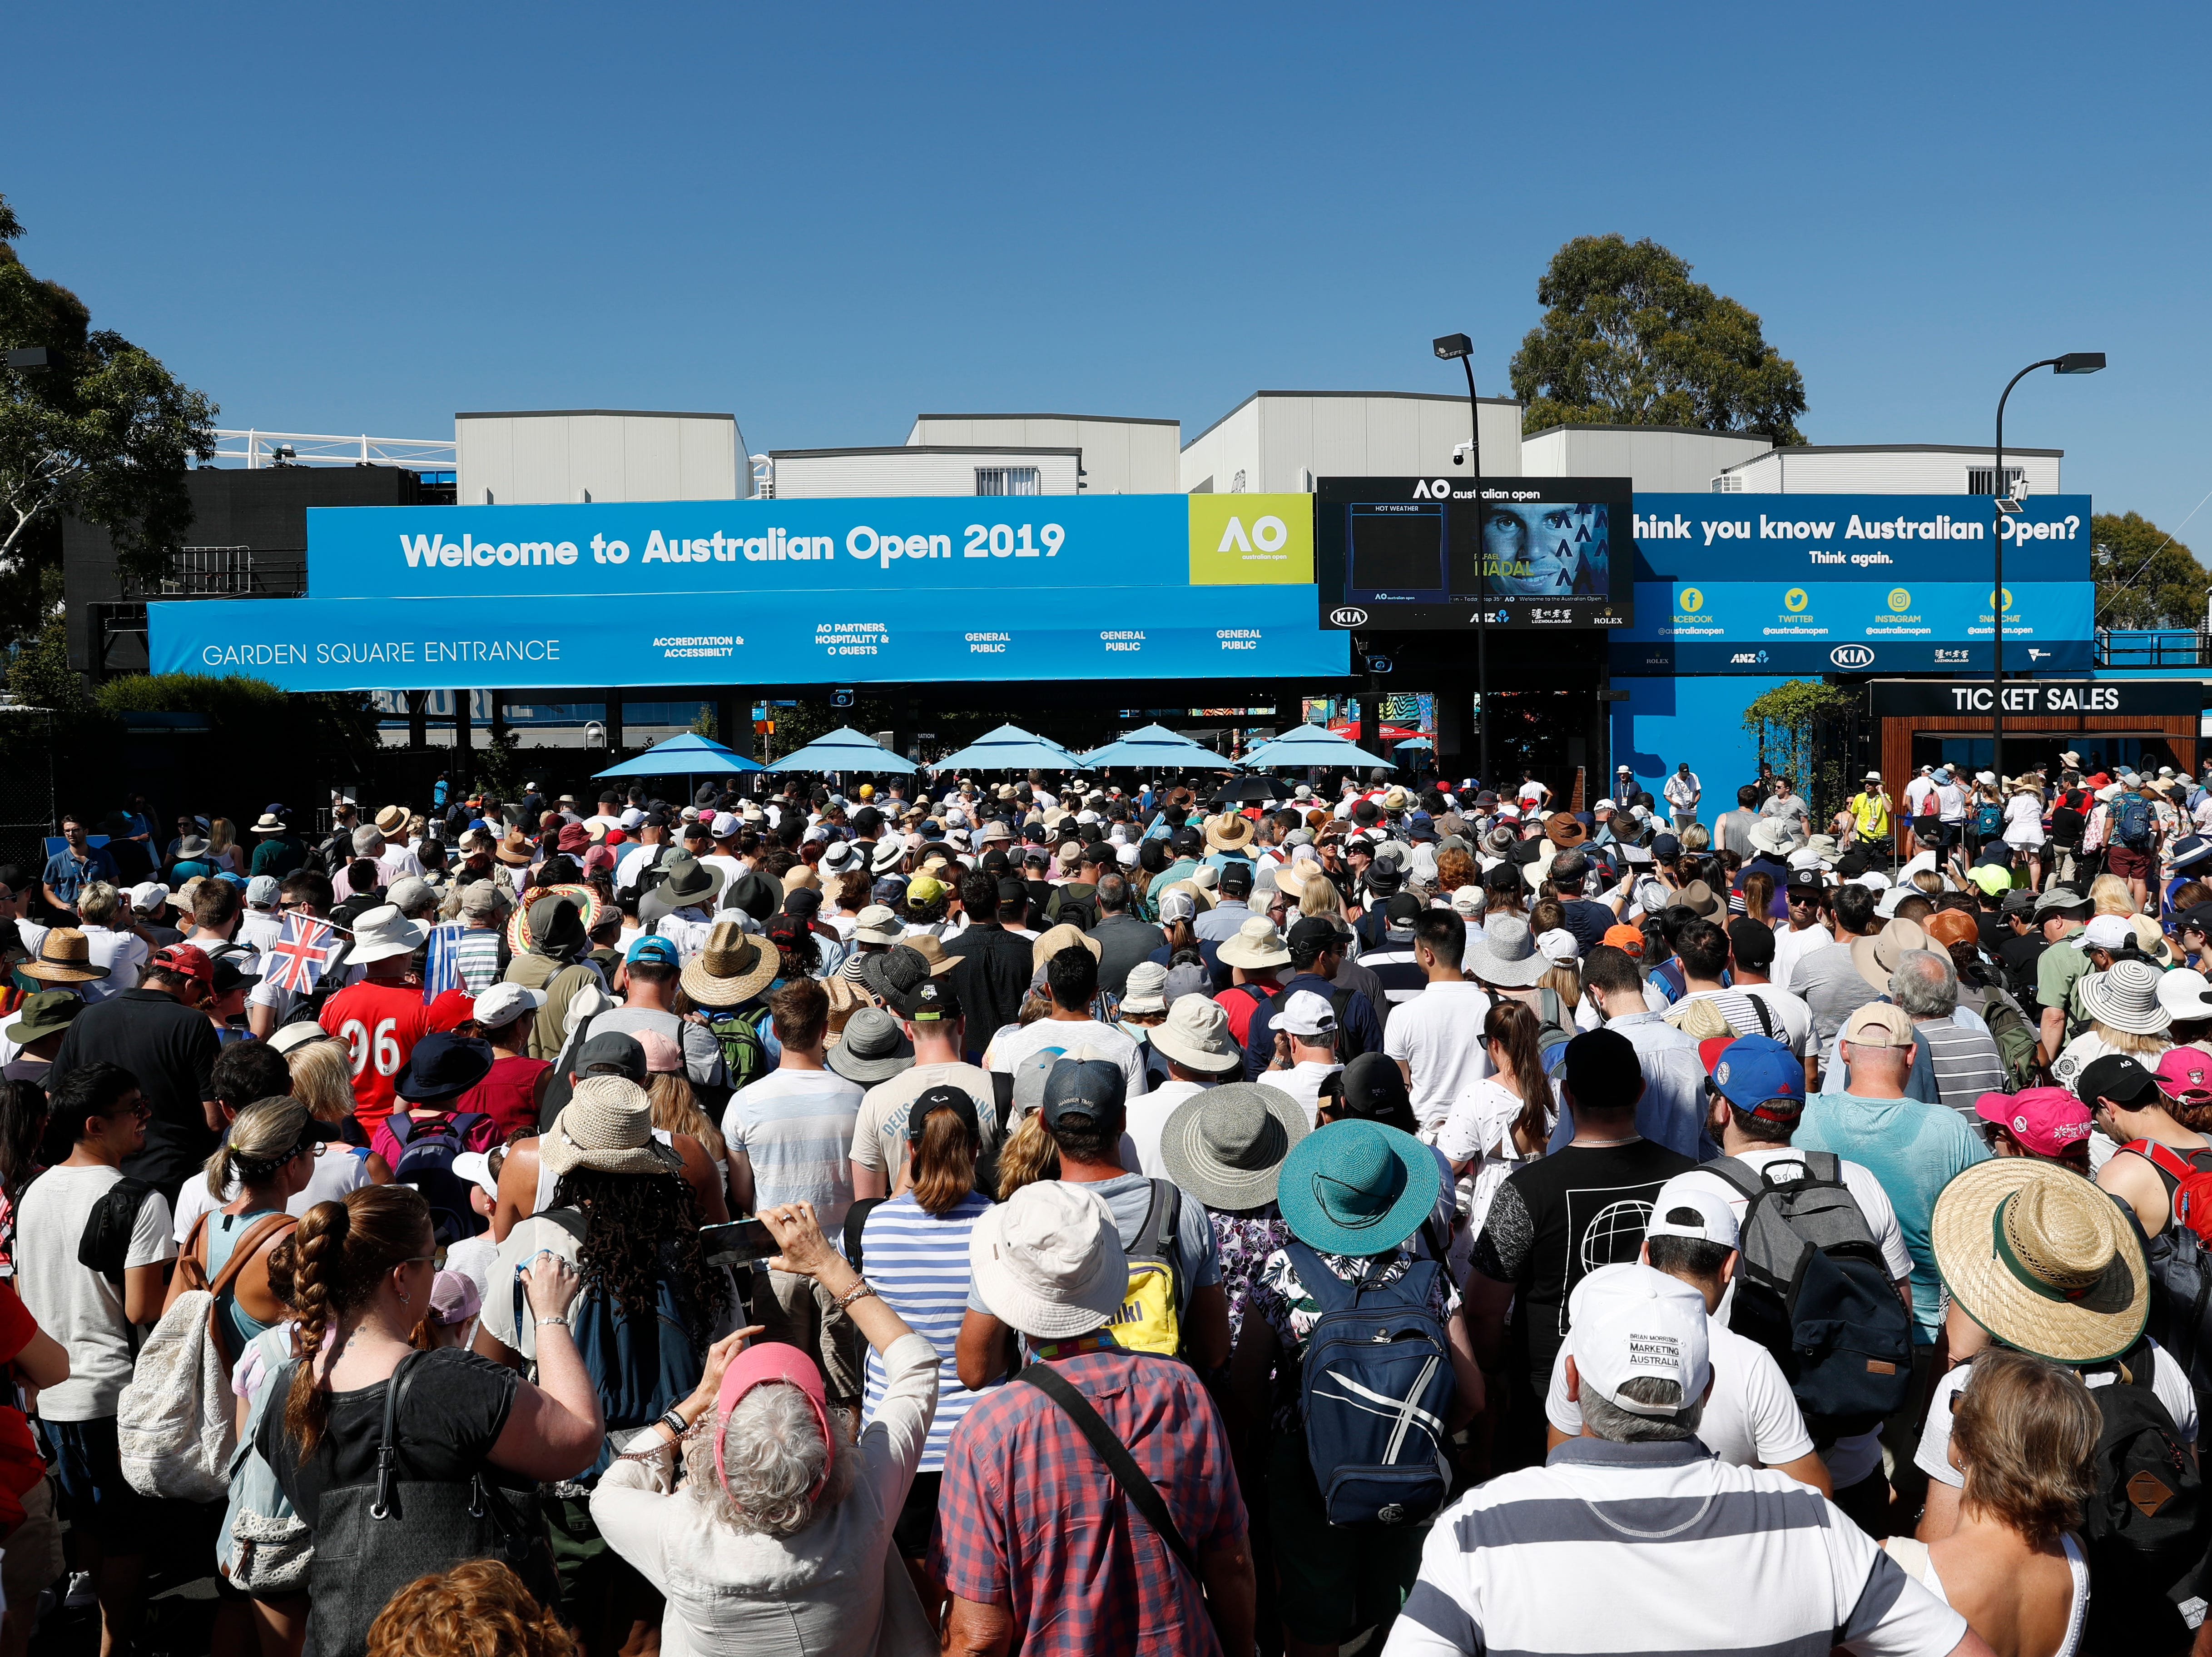 Tennis fans line up to enter Melbourne Park on Day 1 of the 2019 Australian Open.